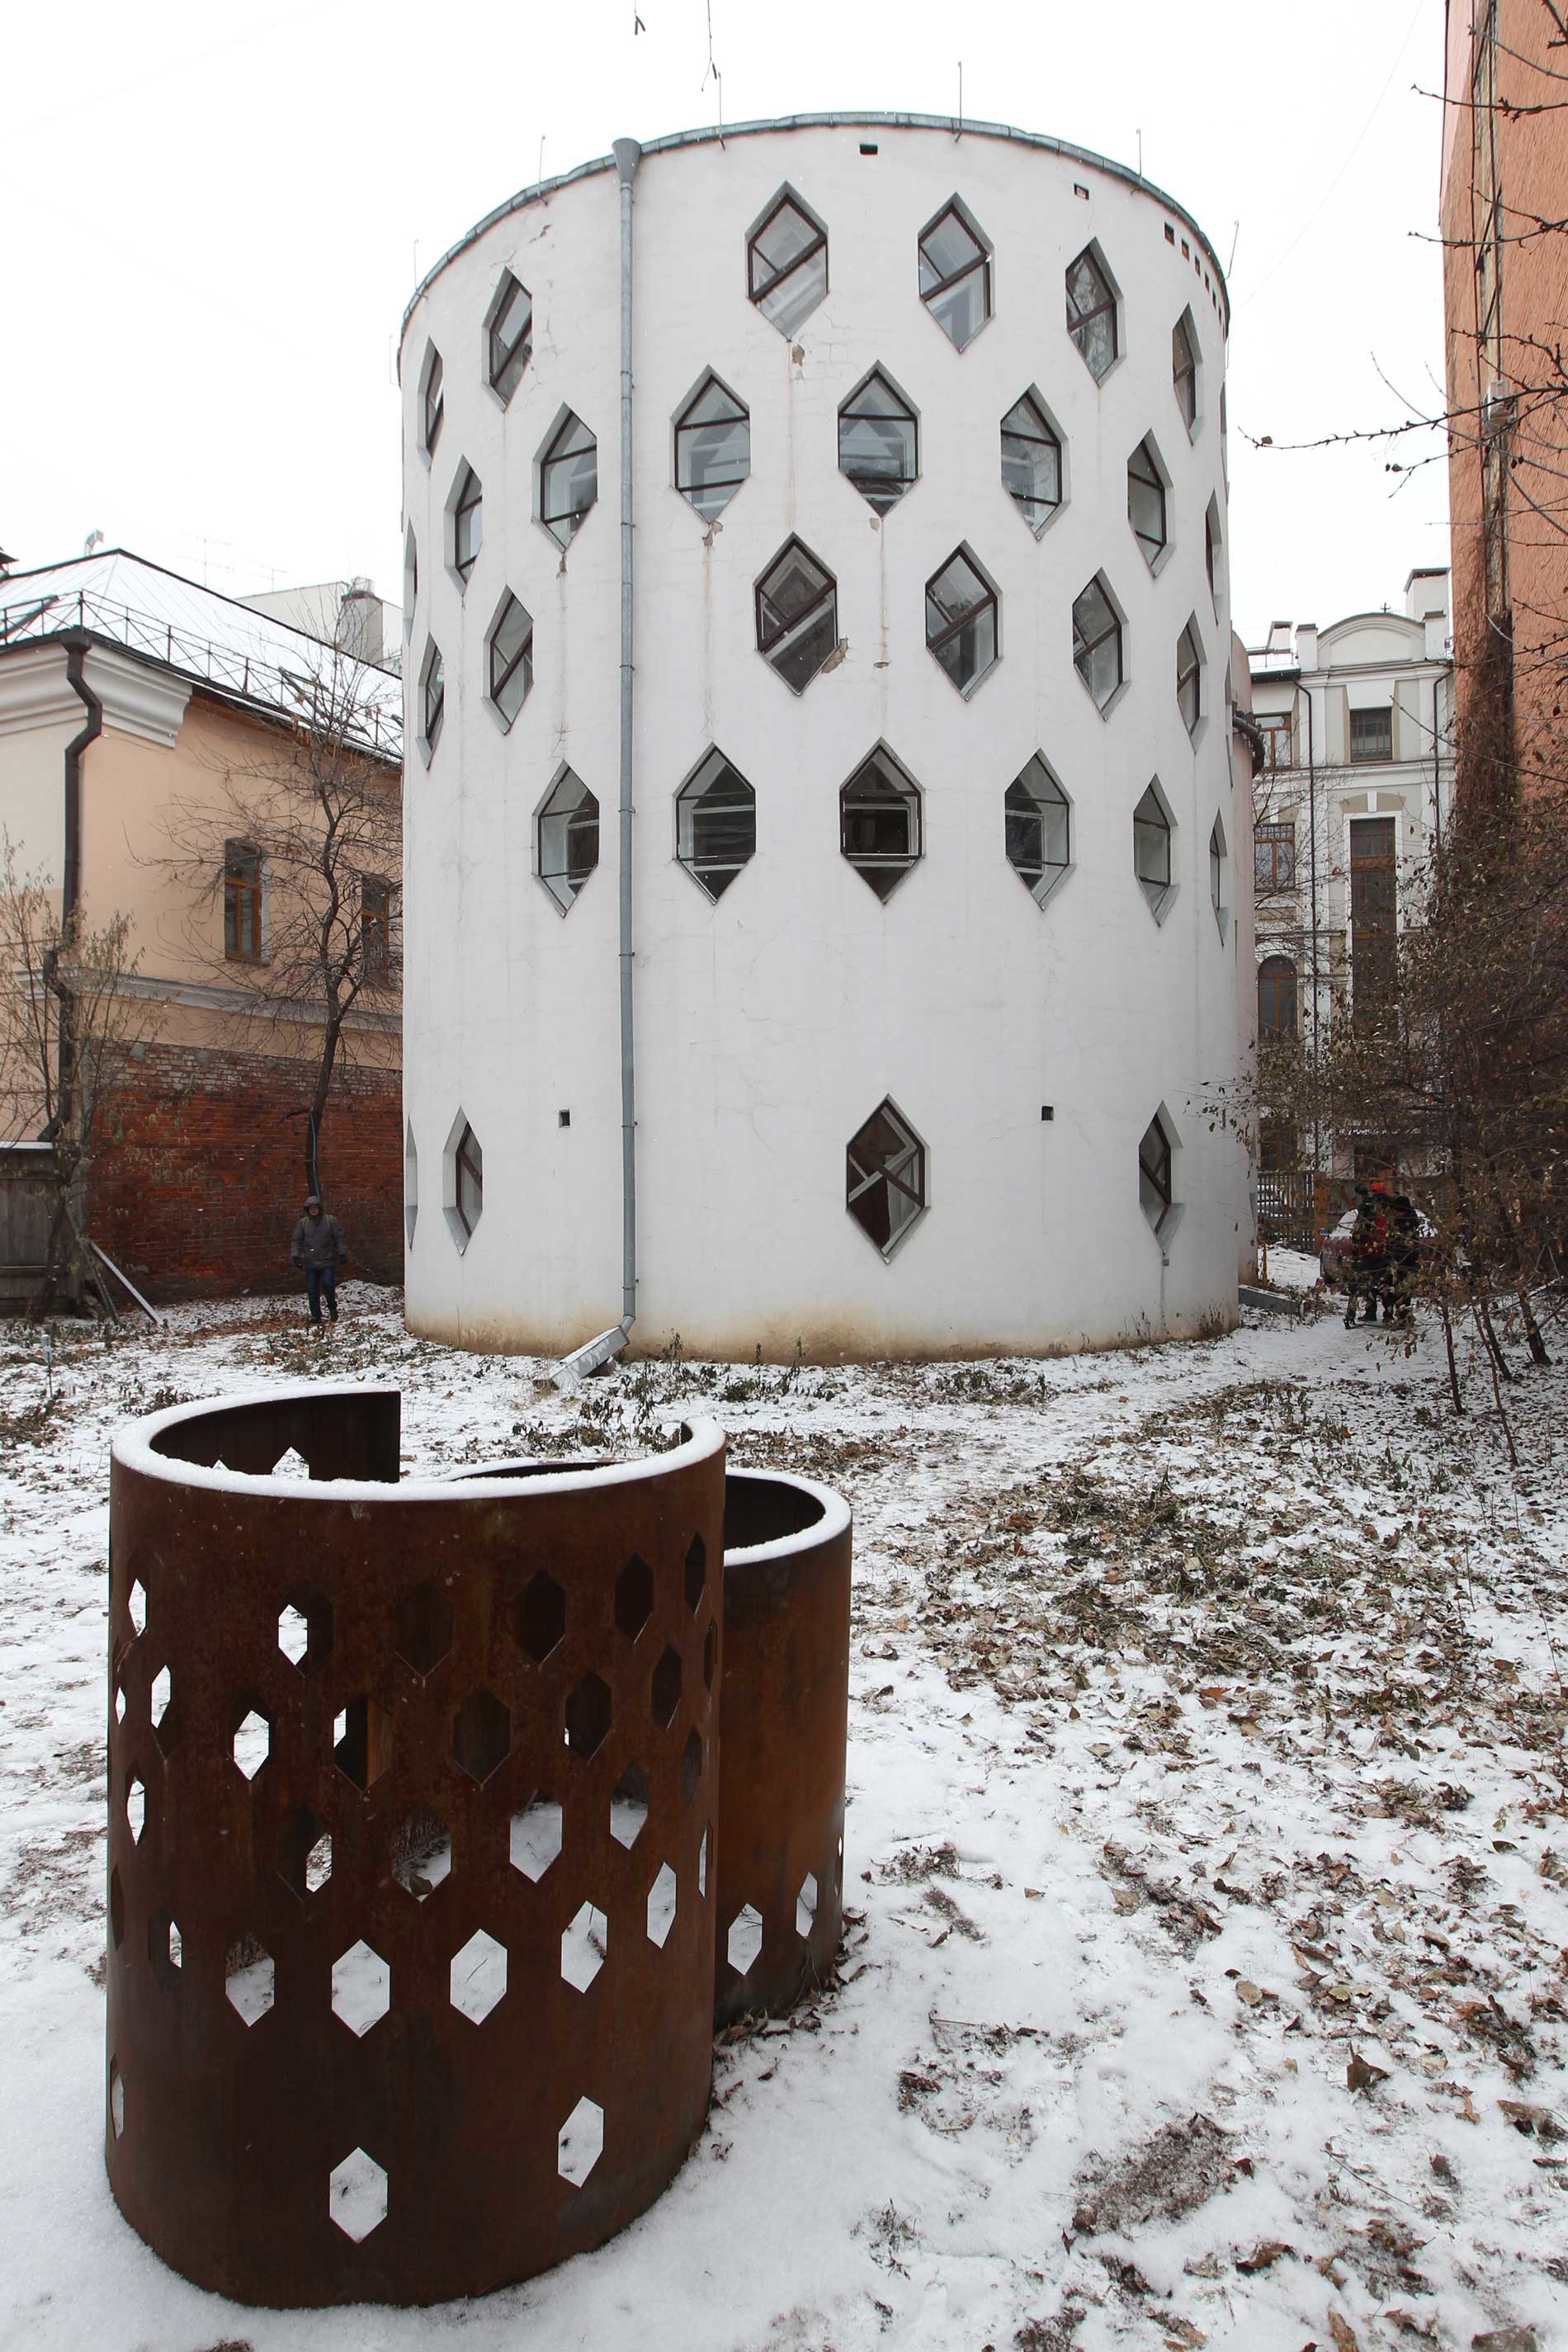 The State Museum of Konstantin and Viktor Melnikov